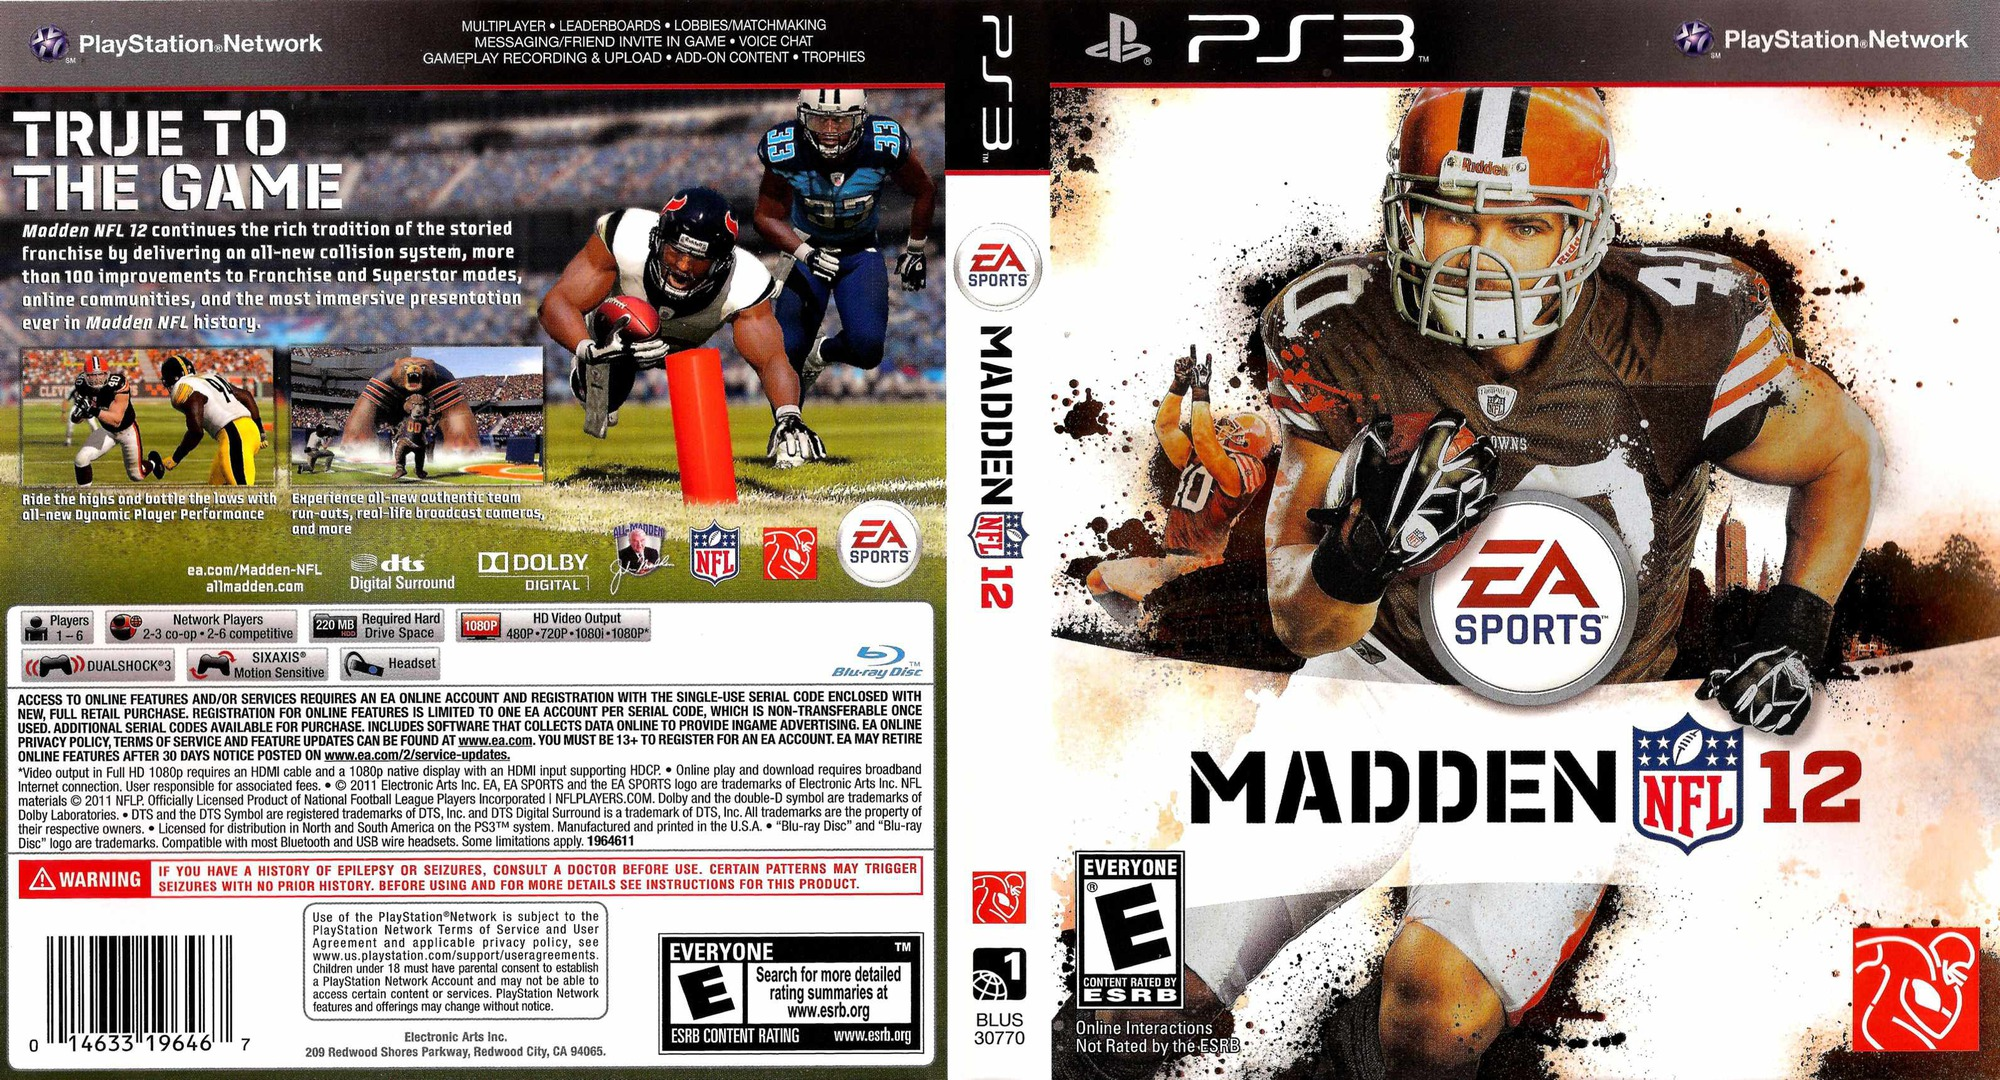 Madden NFL 12 PS3 coverfullHQ (BLUS30770)